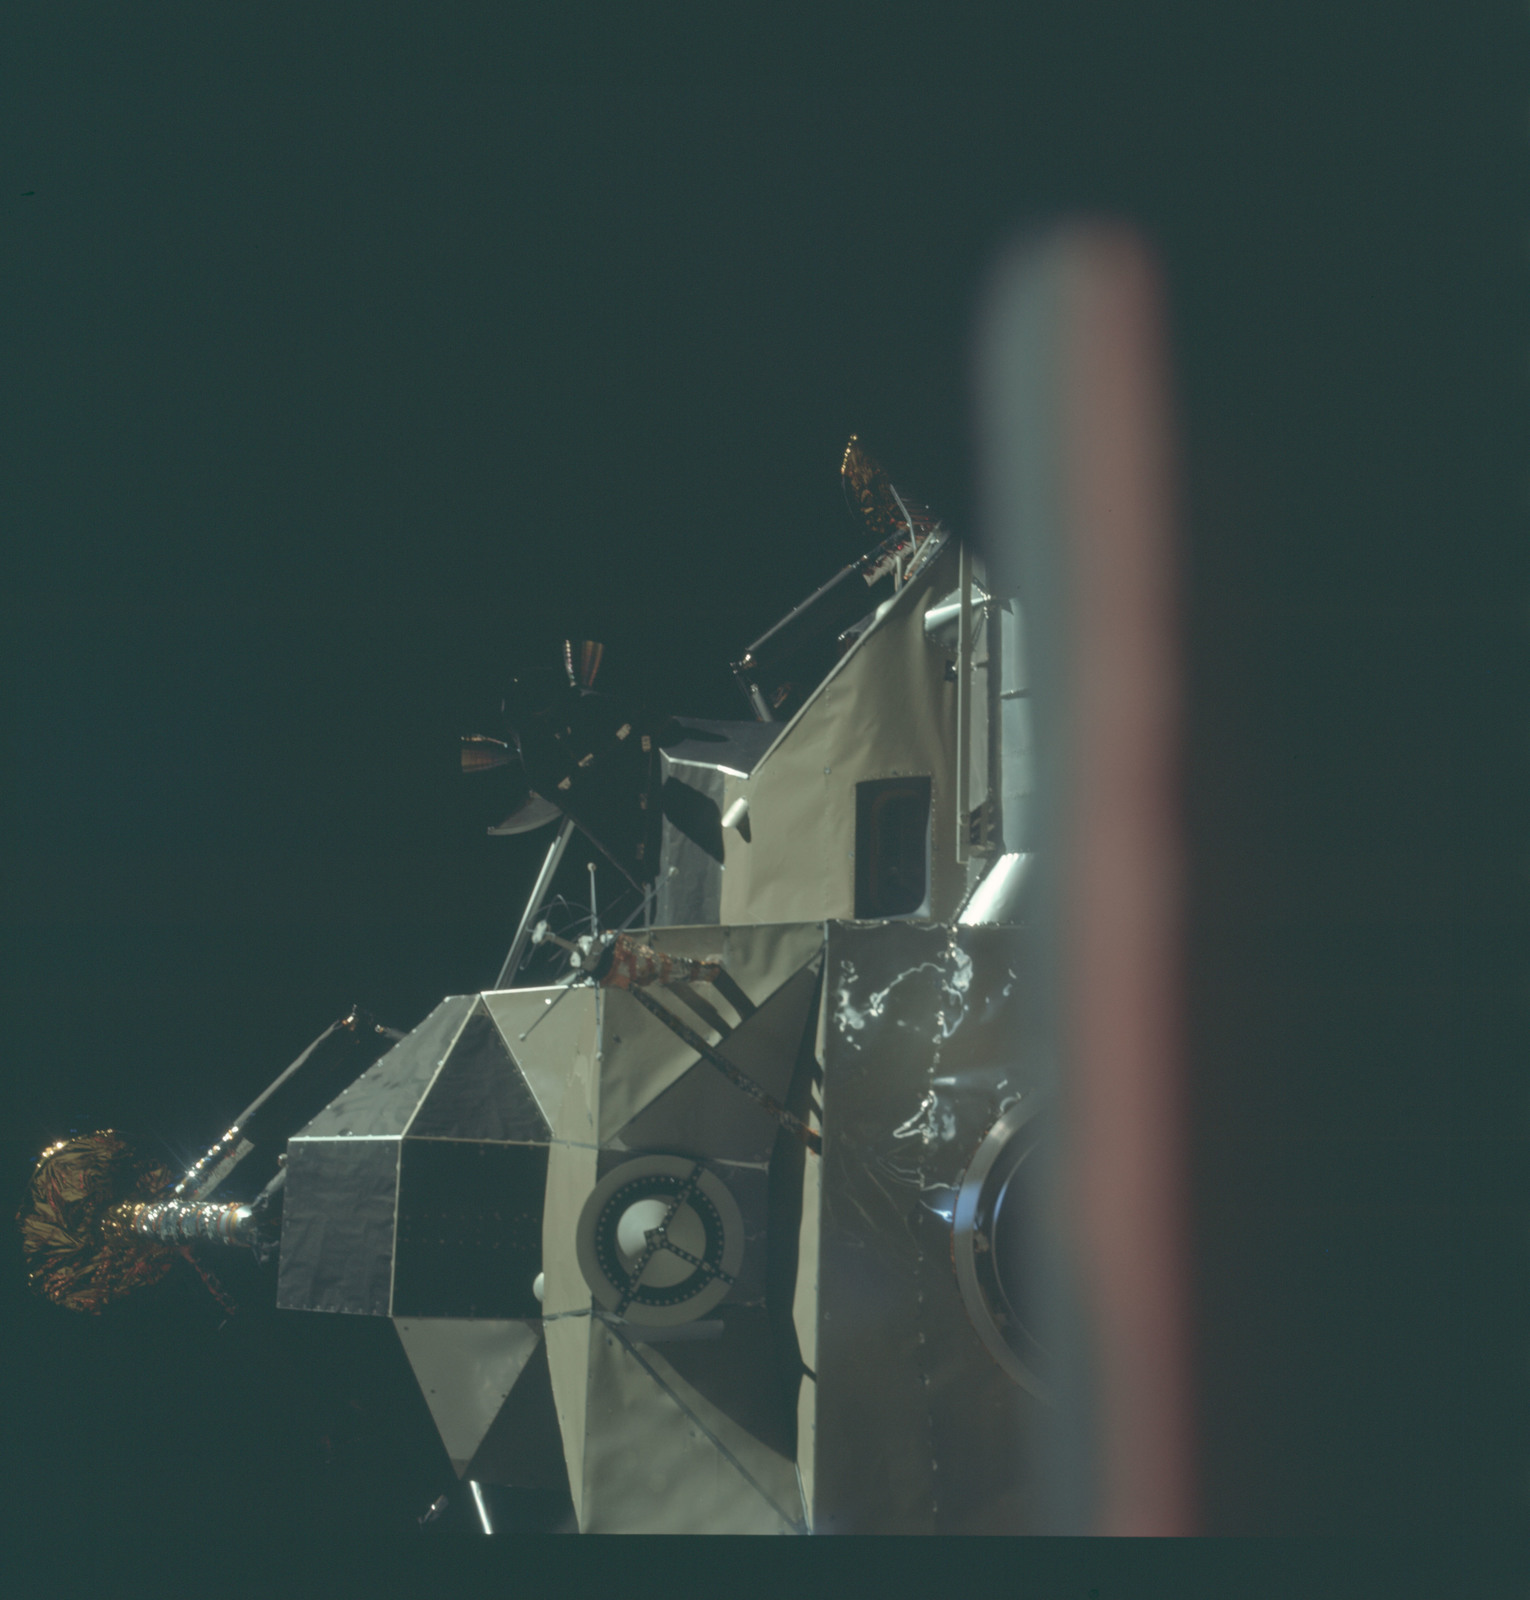 AS11-44-6566 - Apollo 11 - Apollo 11 Mission image - View of Lunar Module separation from the Command Module